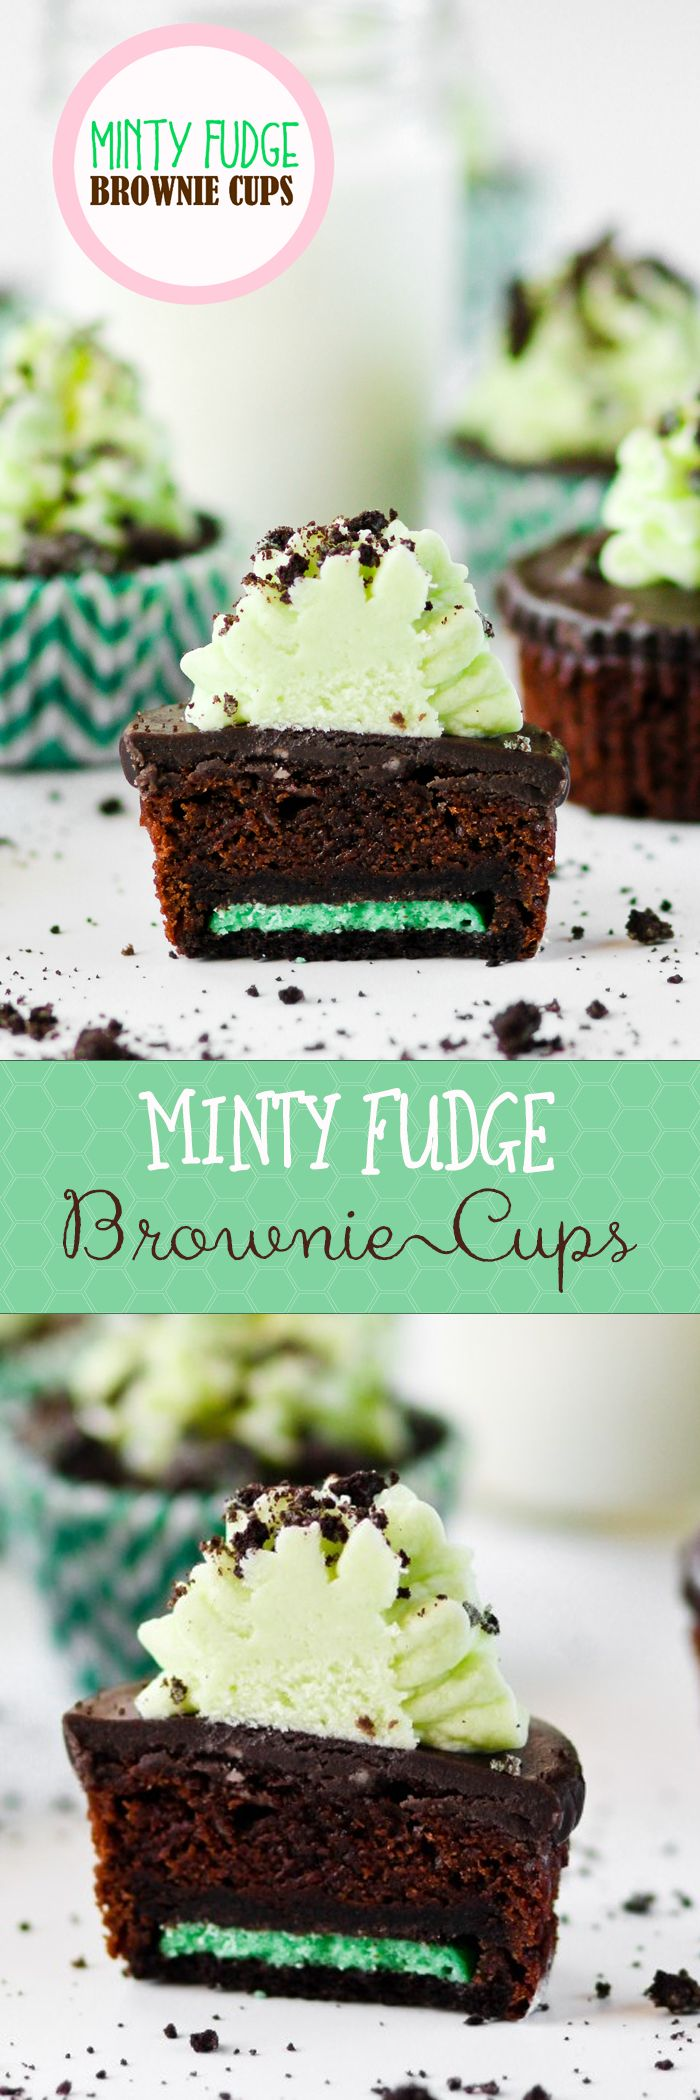 Minty Fudge Brownie Cups -- a must for mint/chocolate lovers!